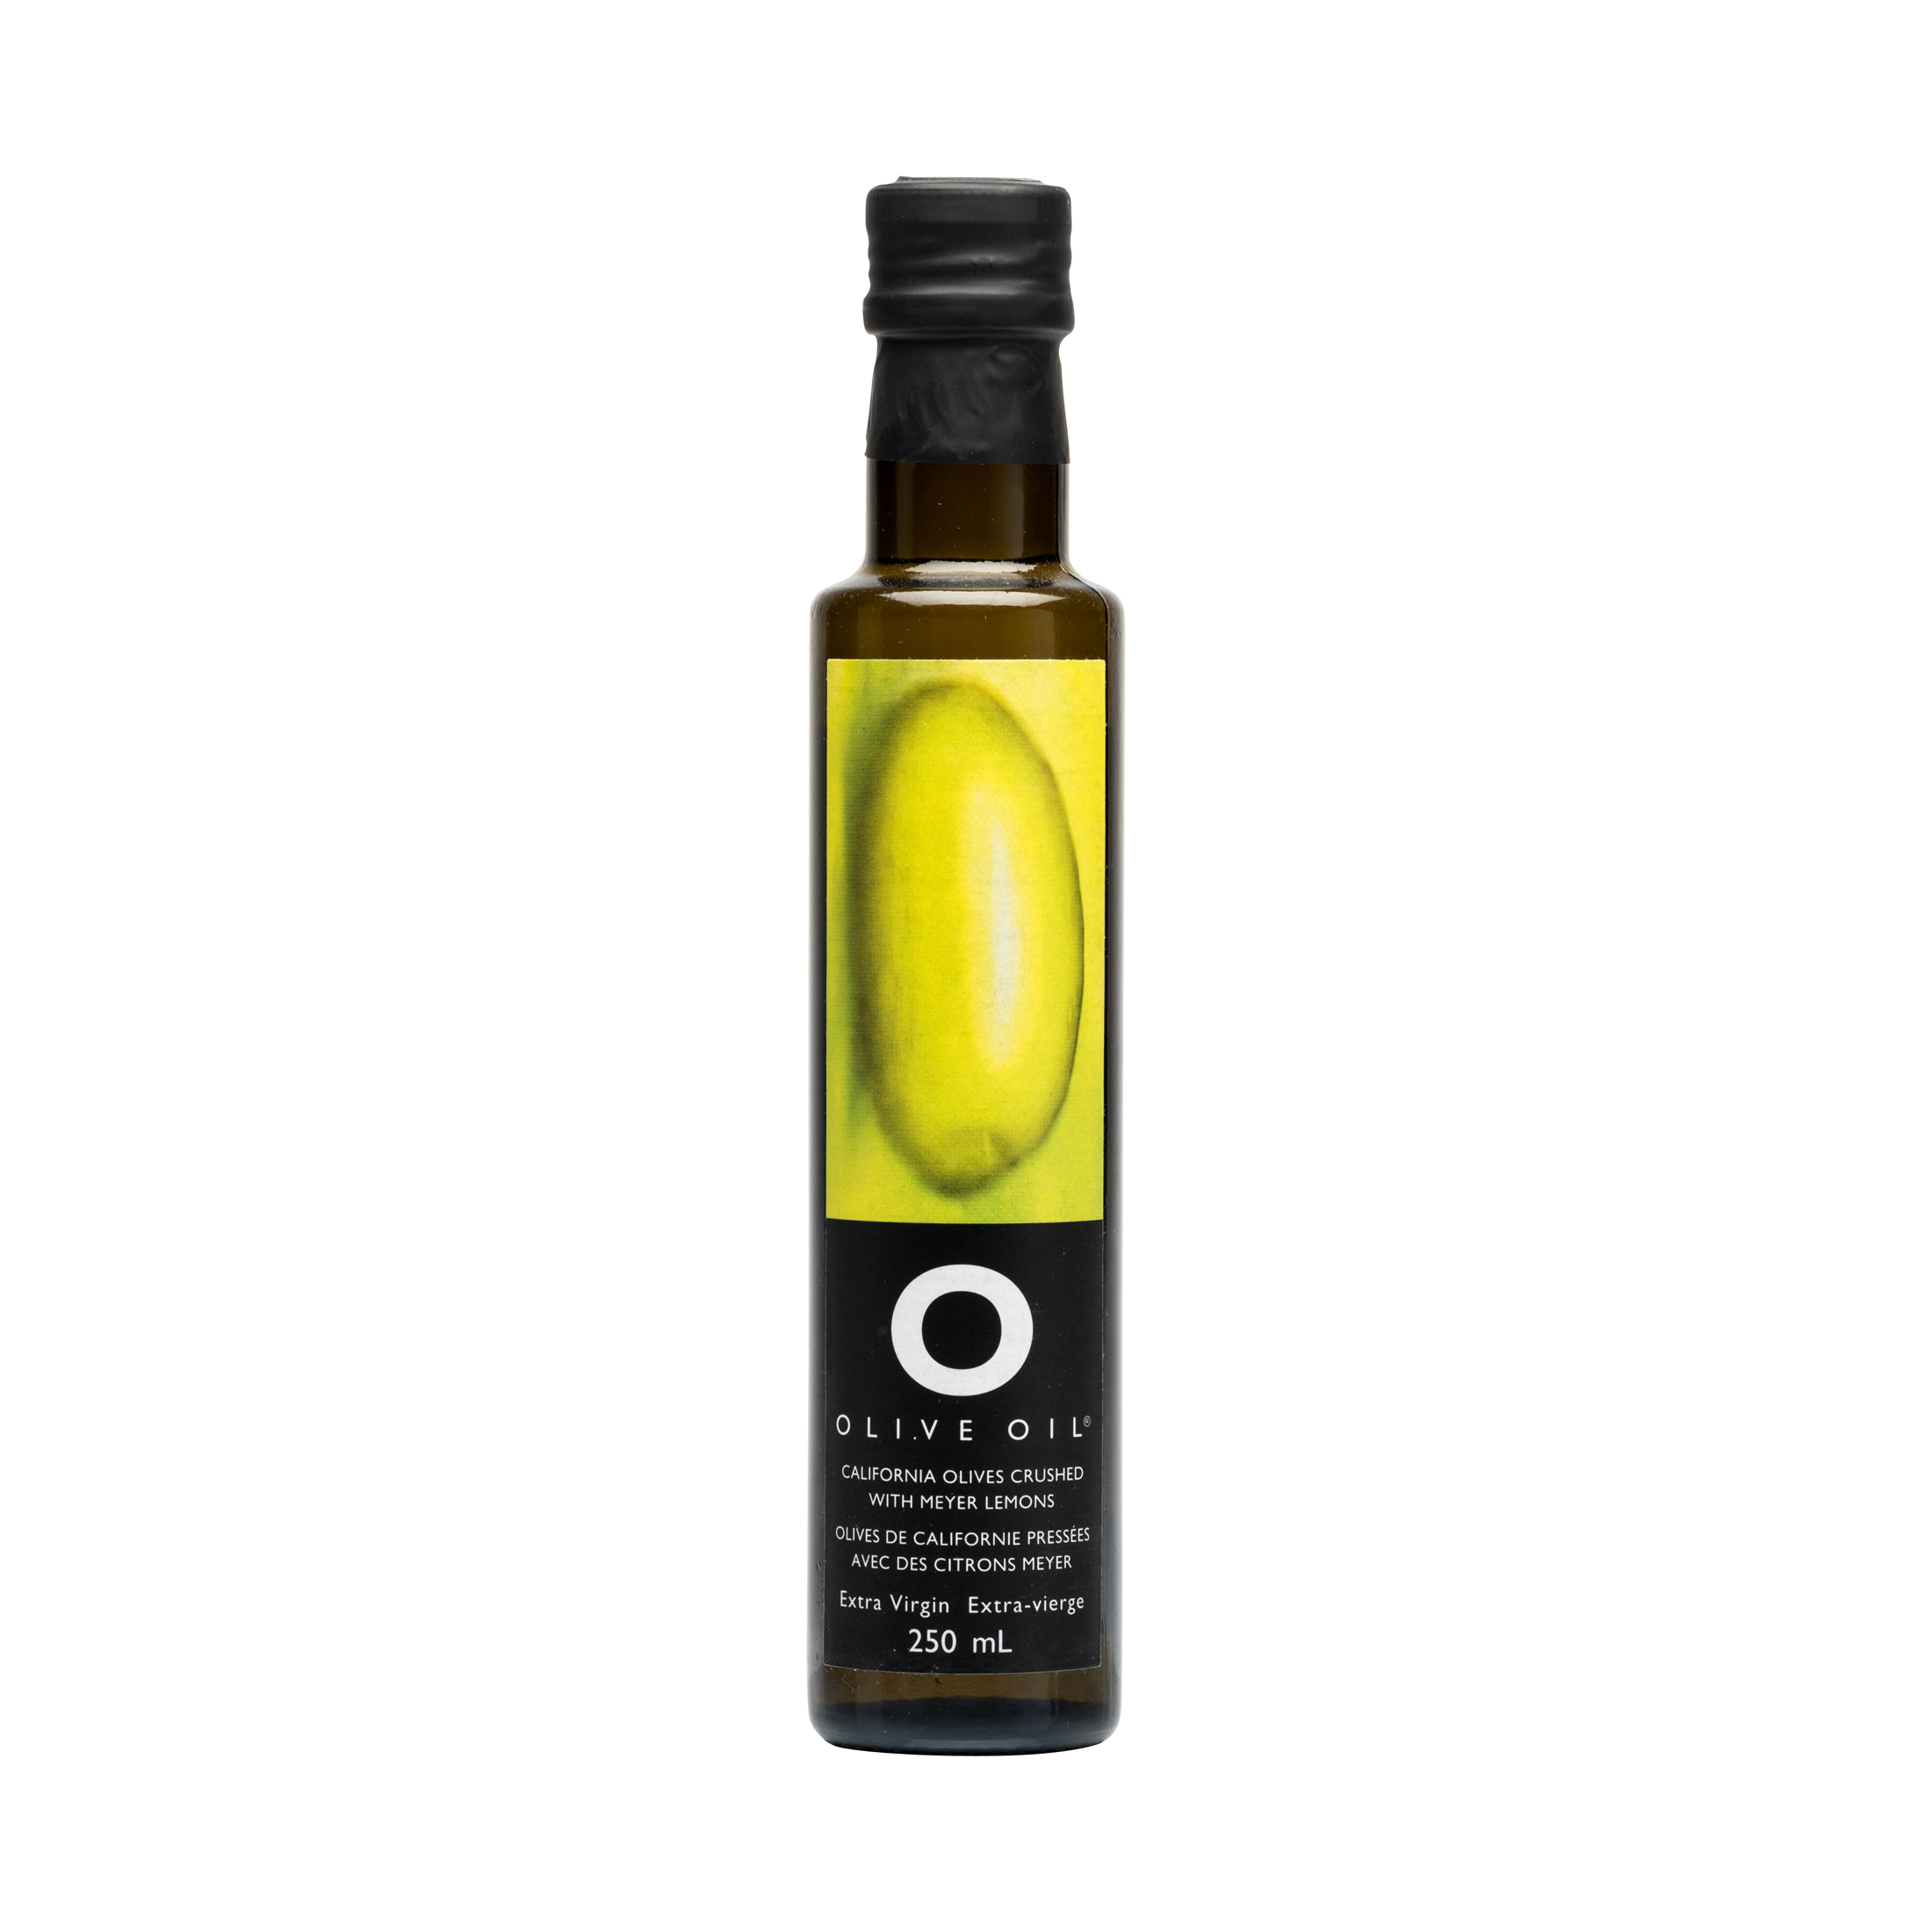 O MEYER LEMONS OLIVE OIL